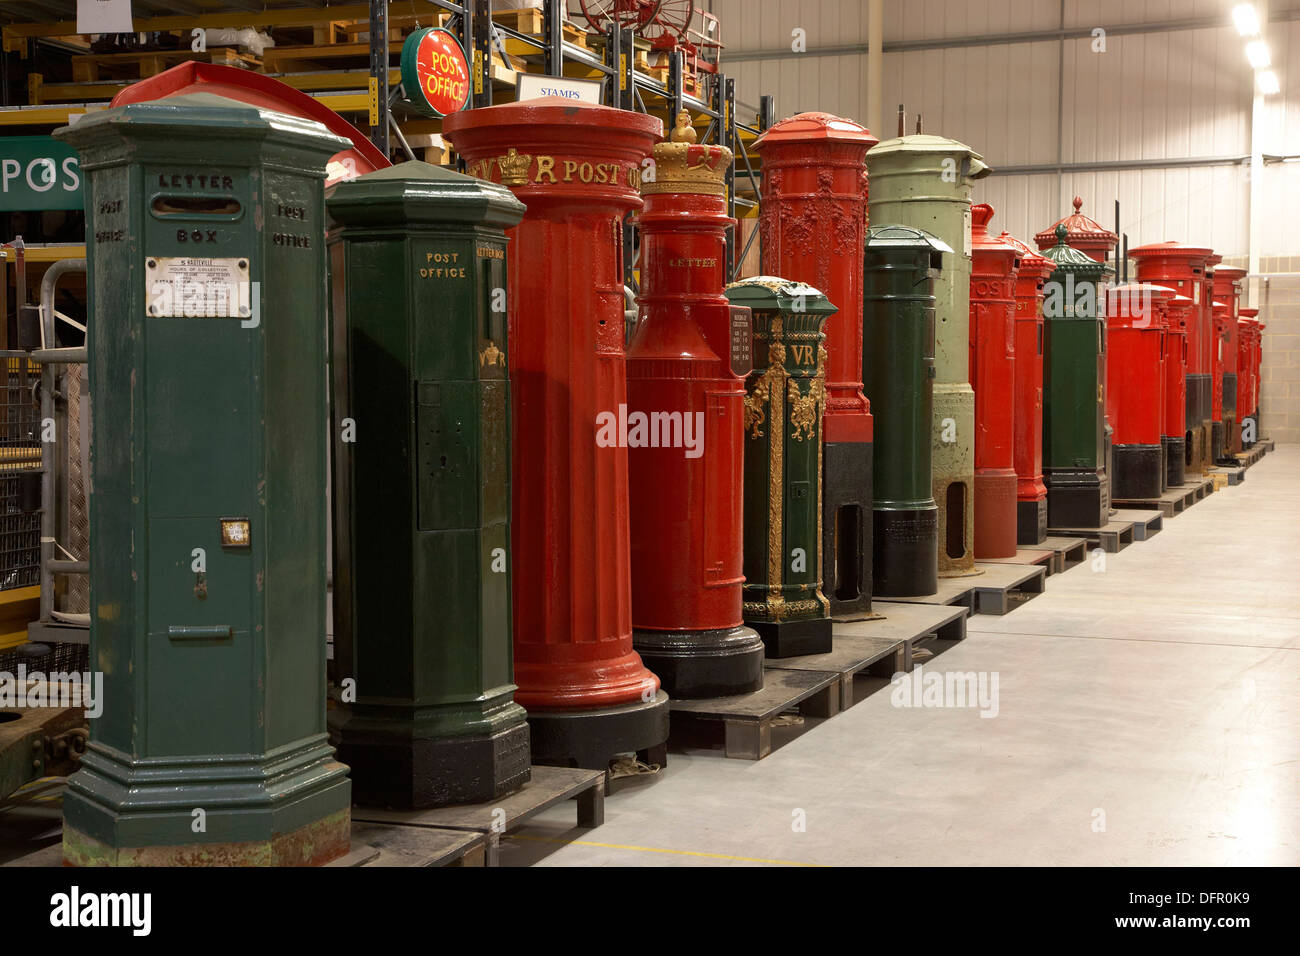 the british postal museum store at debden near loughton essex the line of pillar boxes show the development of post boxes